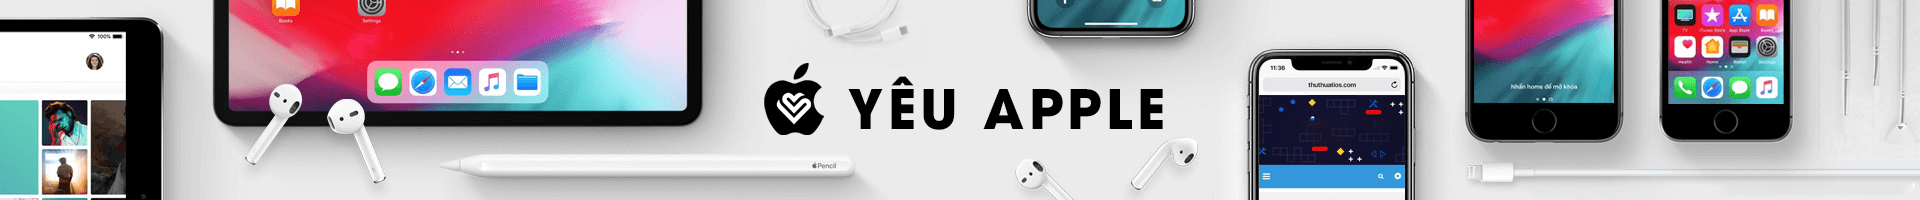 Yêu Apple